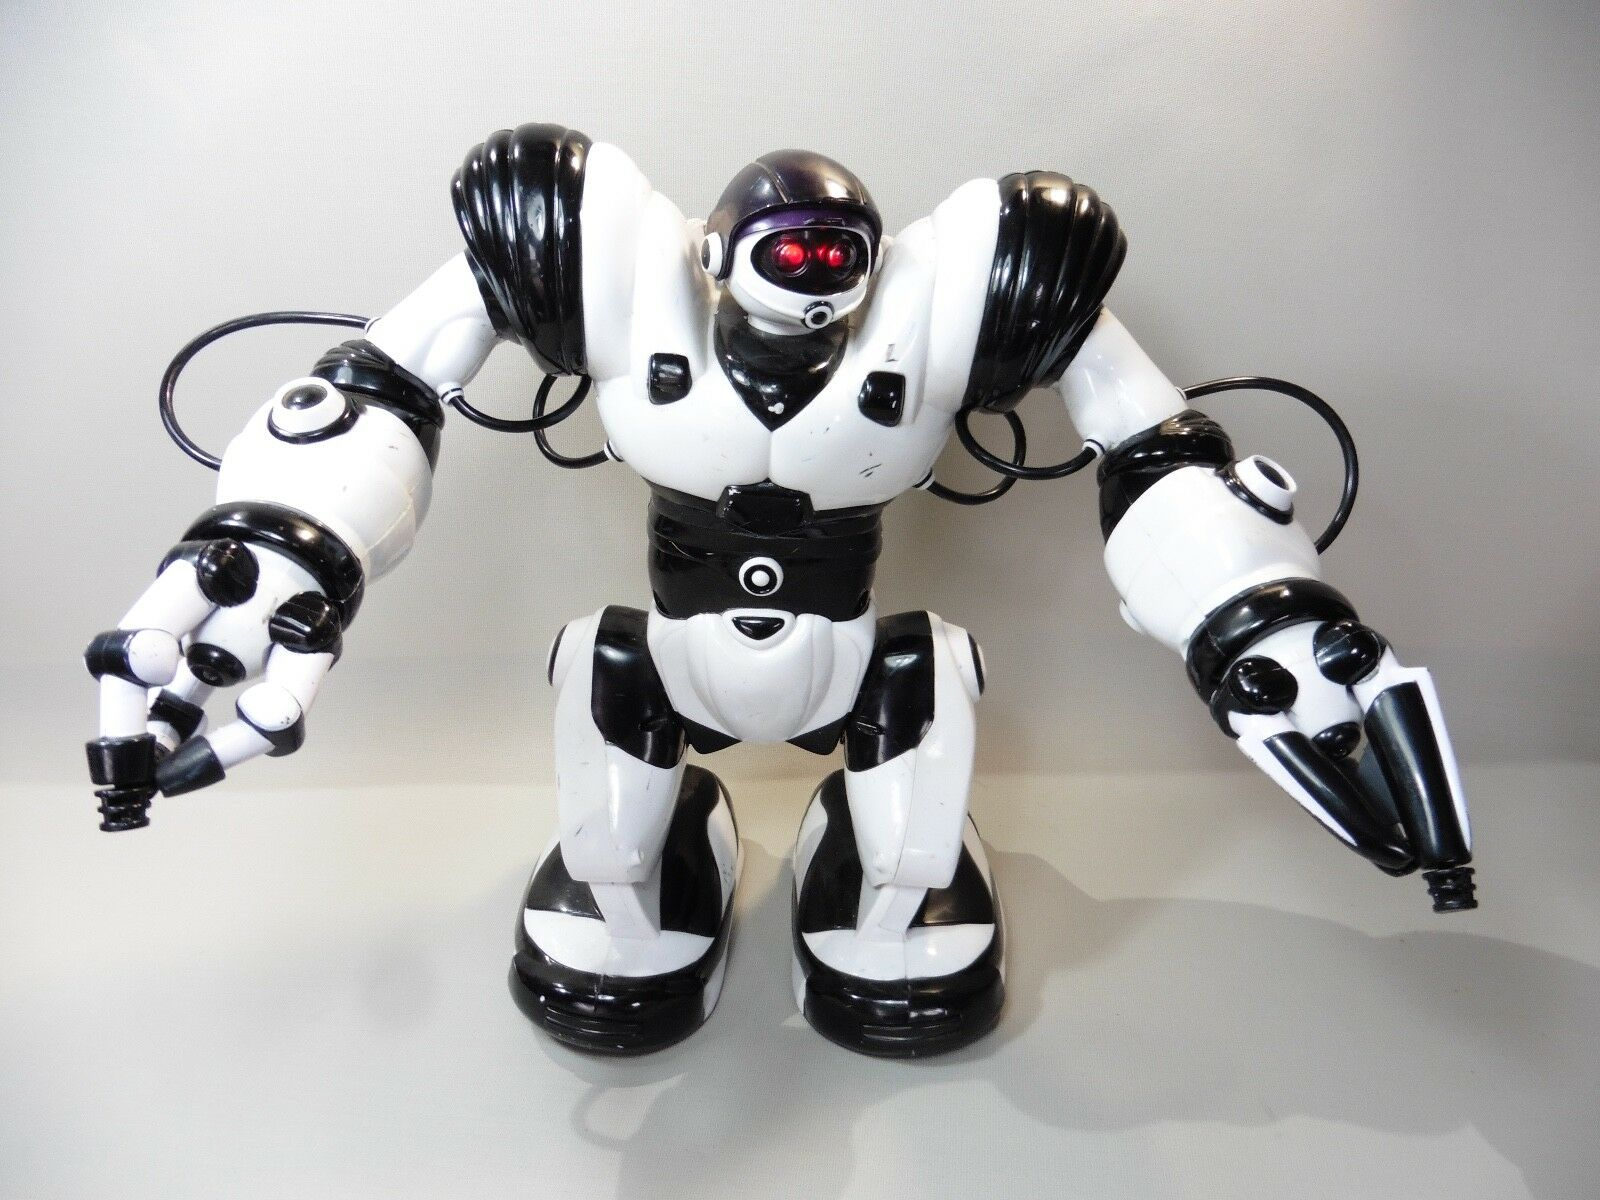 WOWWEE ROBOTSAPIENS 2004   MISSING THE REMOTE CONTROL WORKS IN L' CONDITION